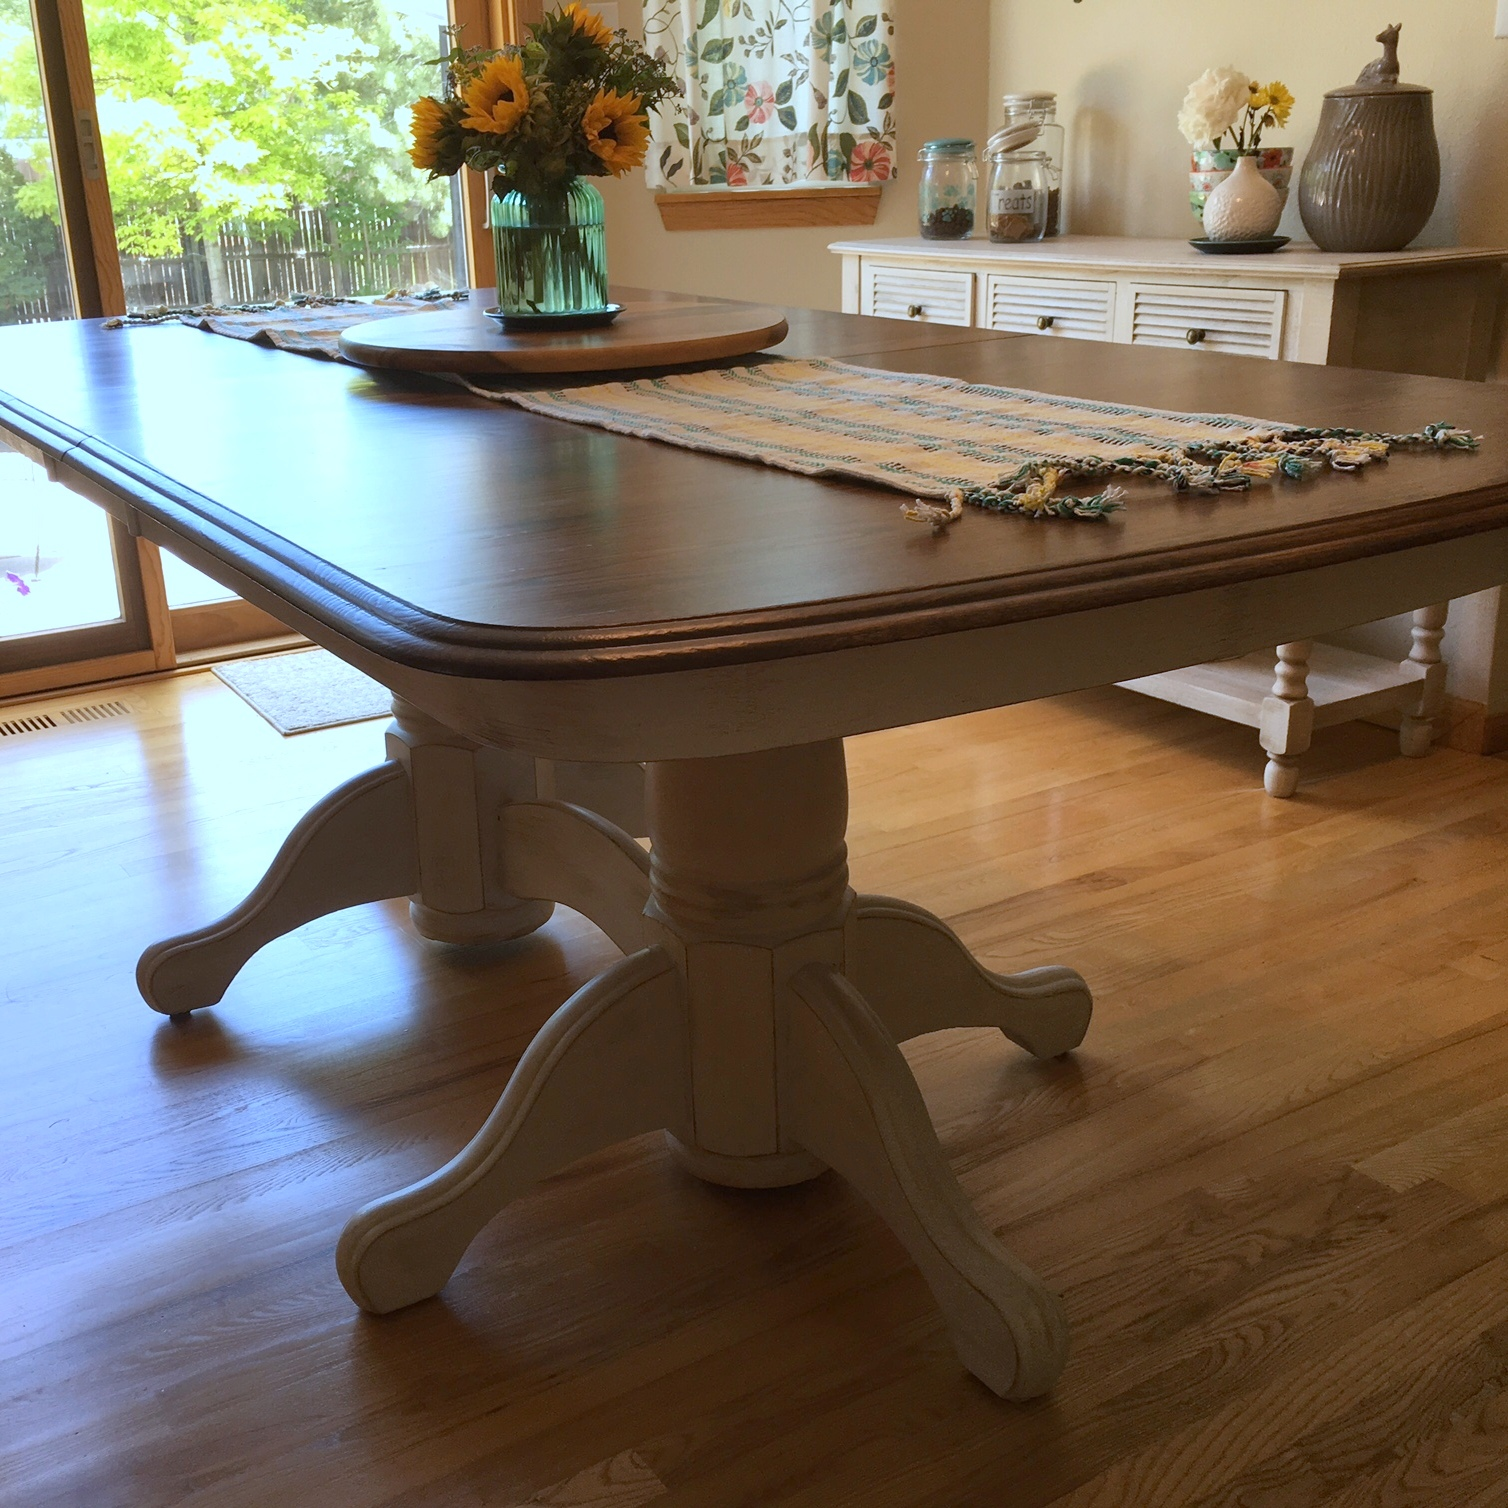 Just another hang up furniture refinishing kitchen table part 4 - Refinishing a kitchen table ...